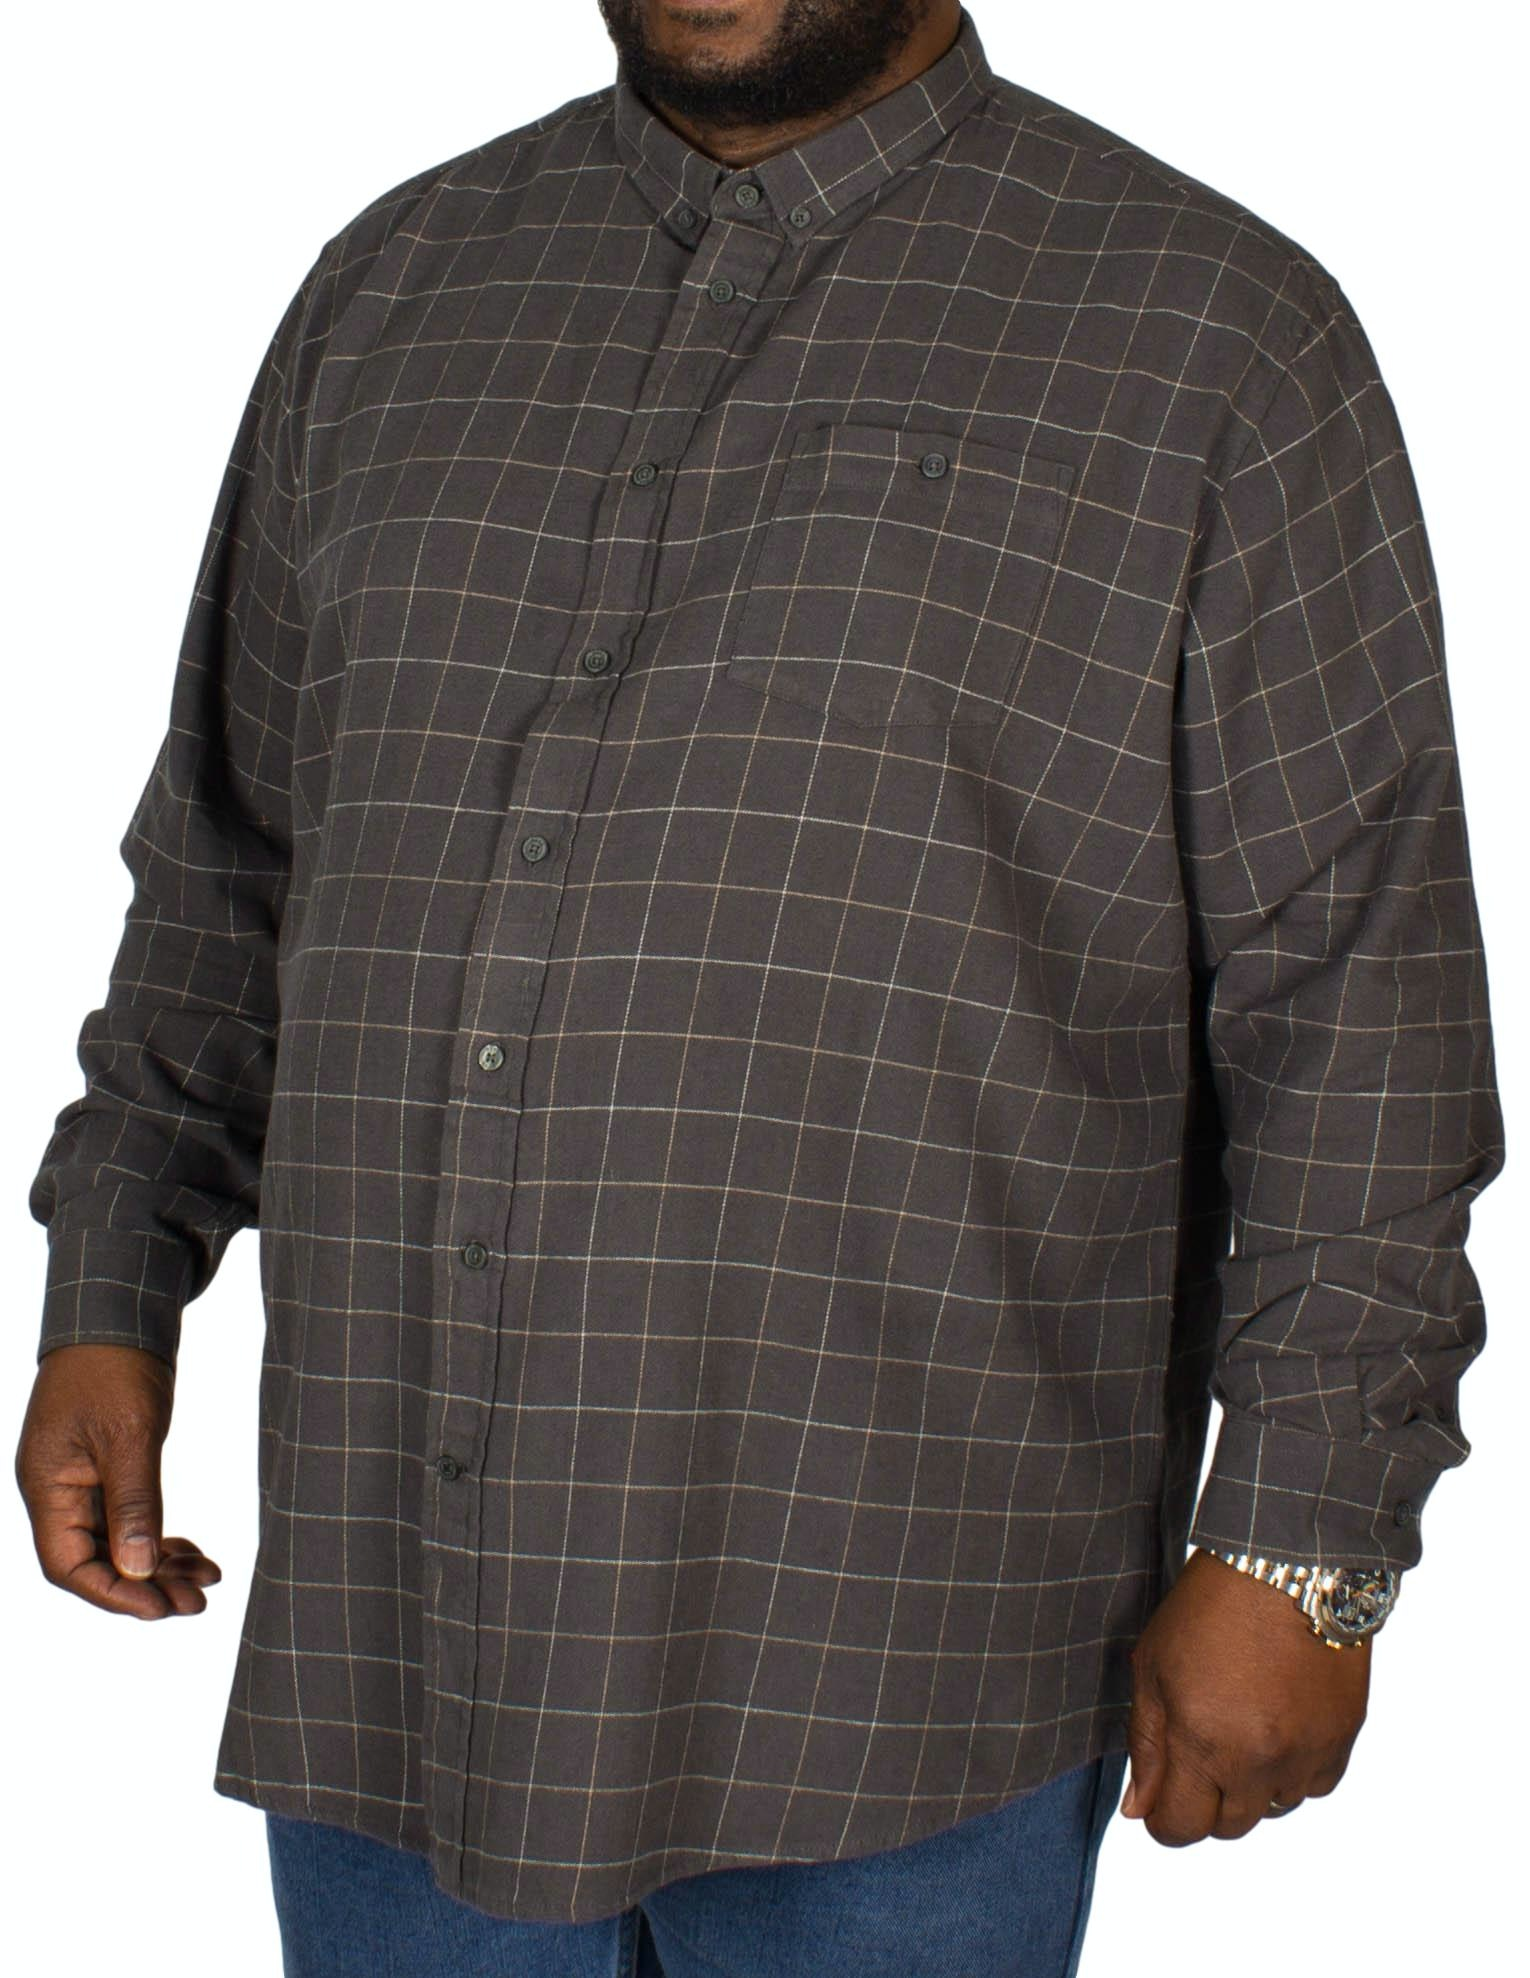 D555 Taylor Pane Check Shirt Charcoal